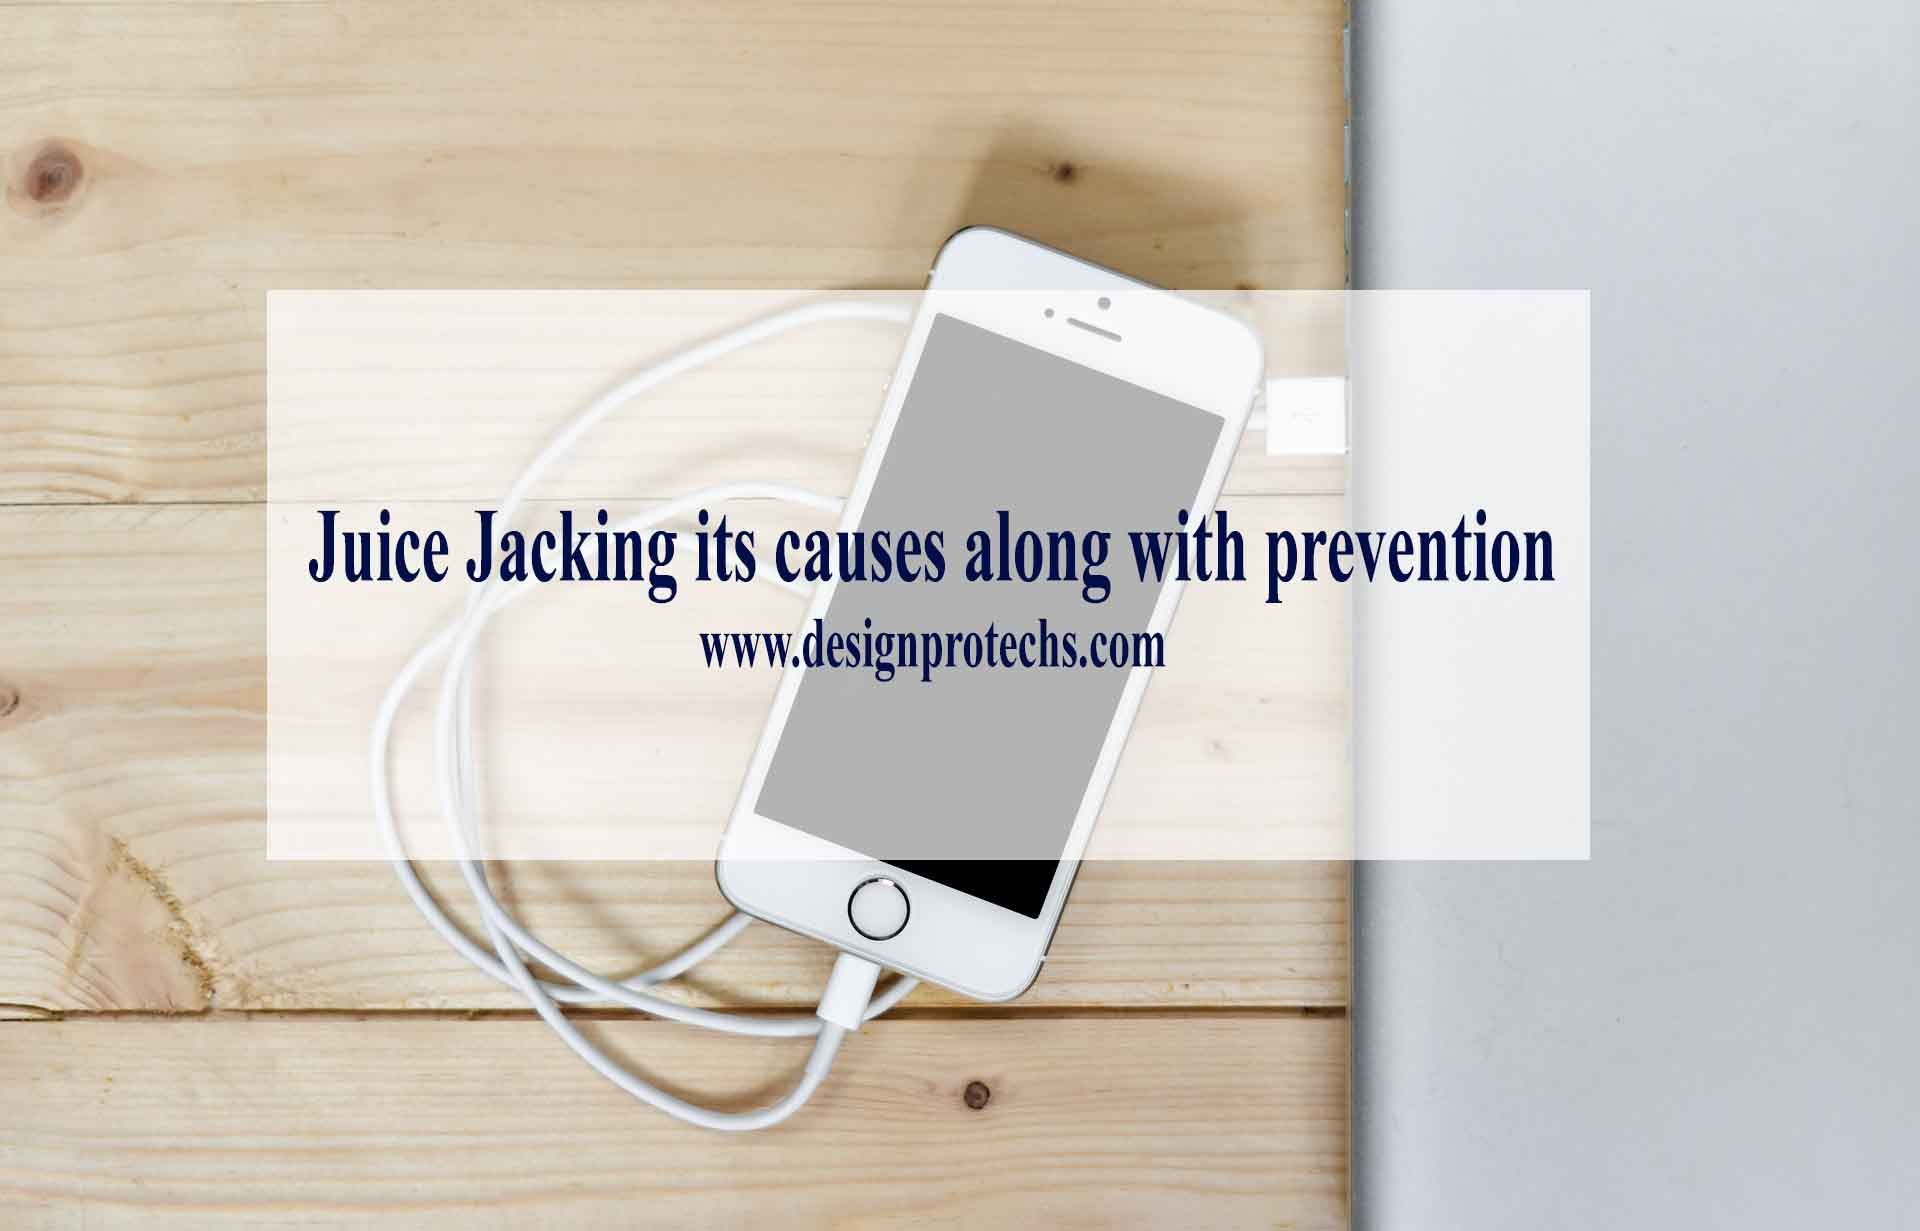 Juice Jacking its causes along with prevention